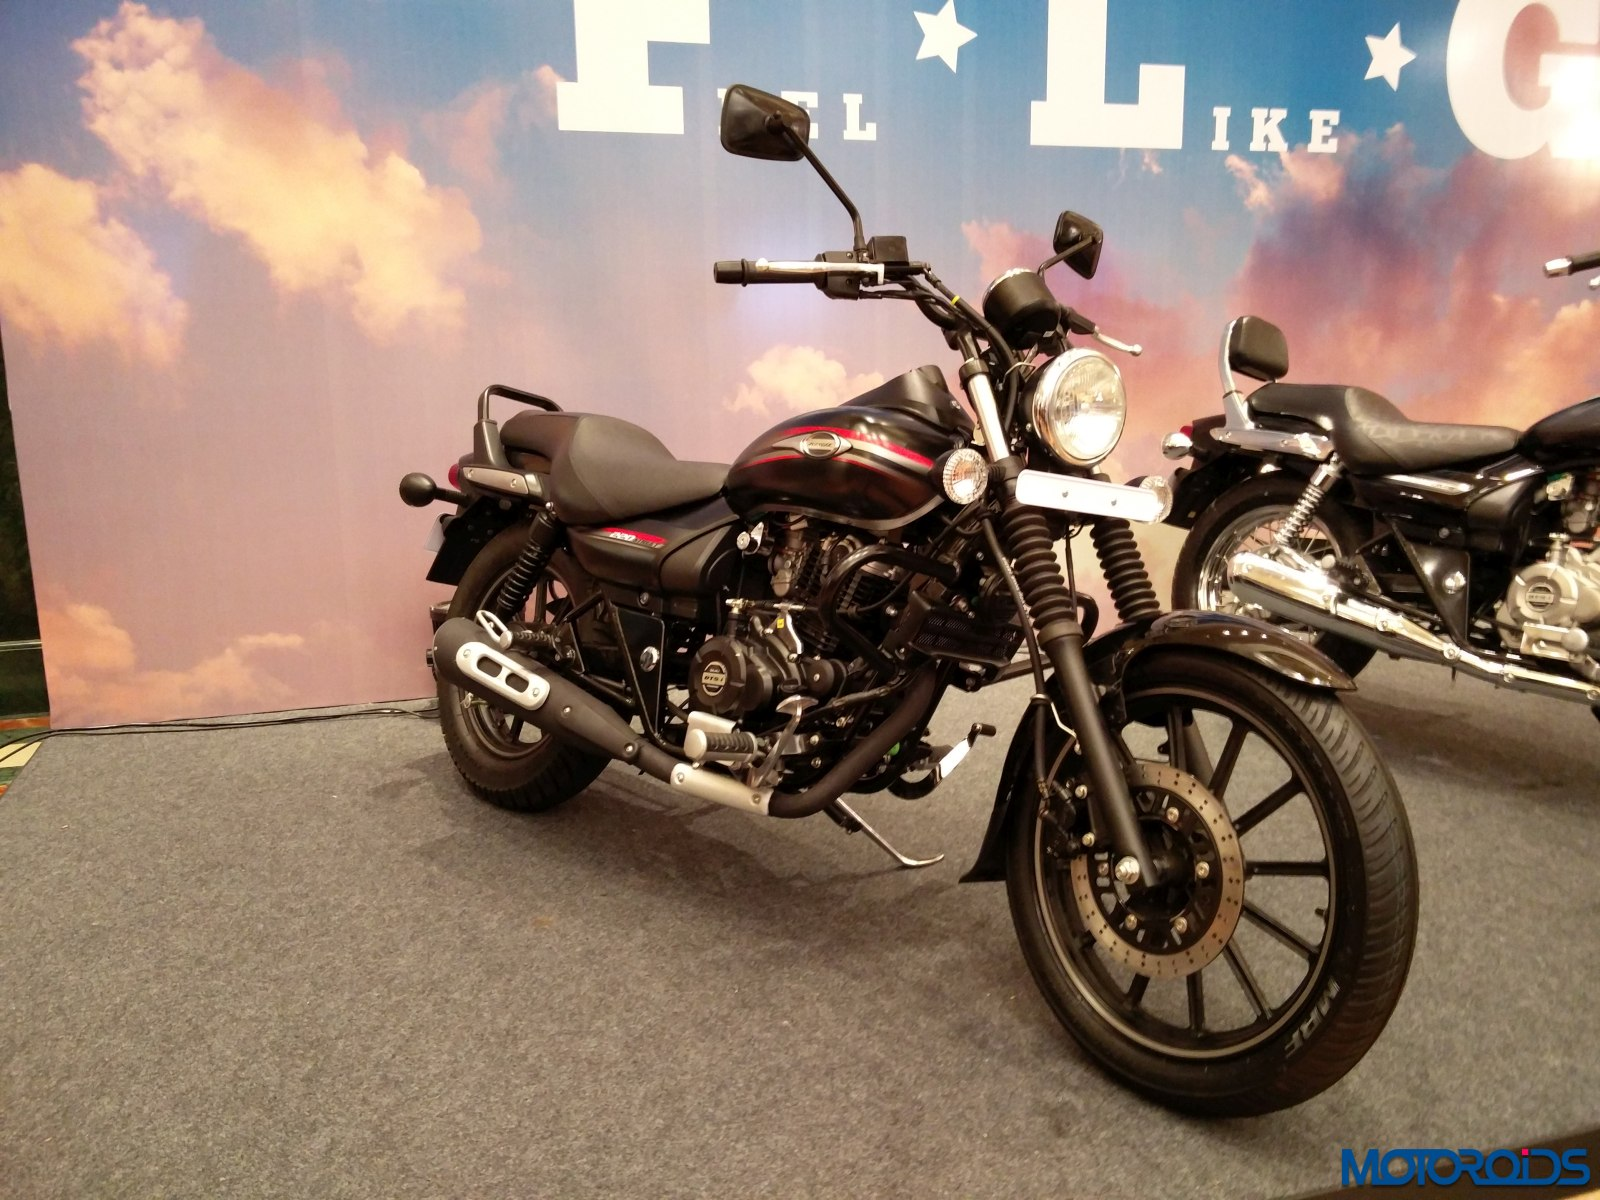 New 2016 Bajaj Avenger India Launch Price Rs 75 000 For 150 And Rs